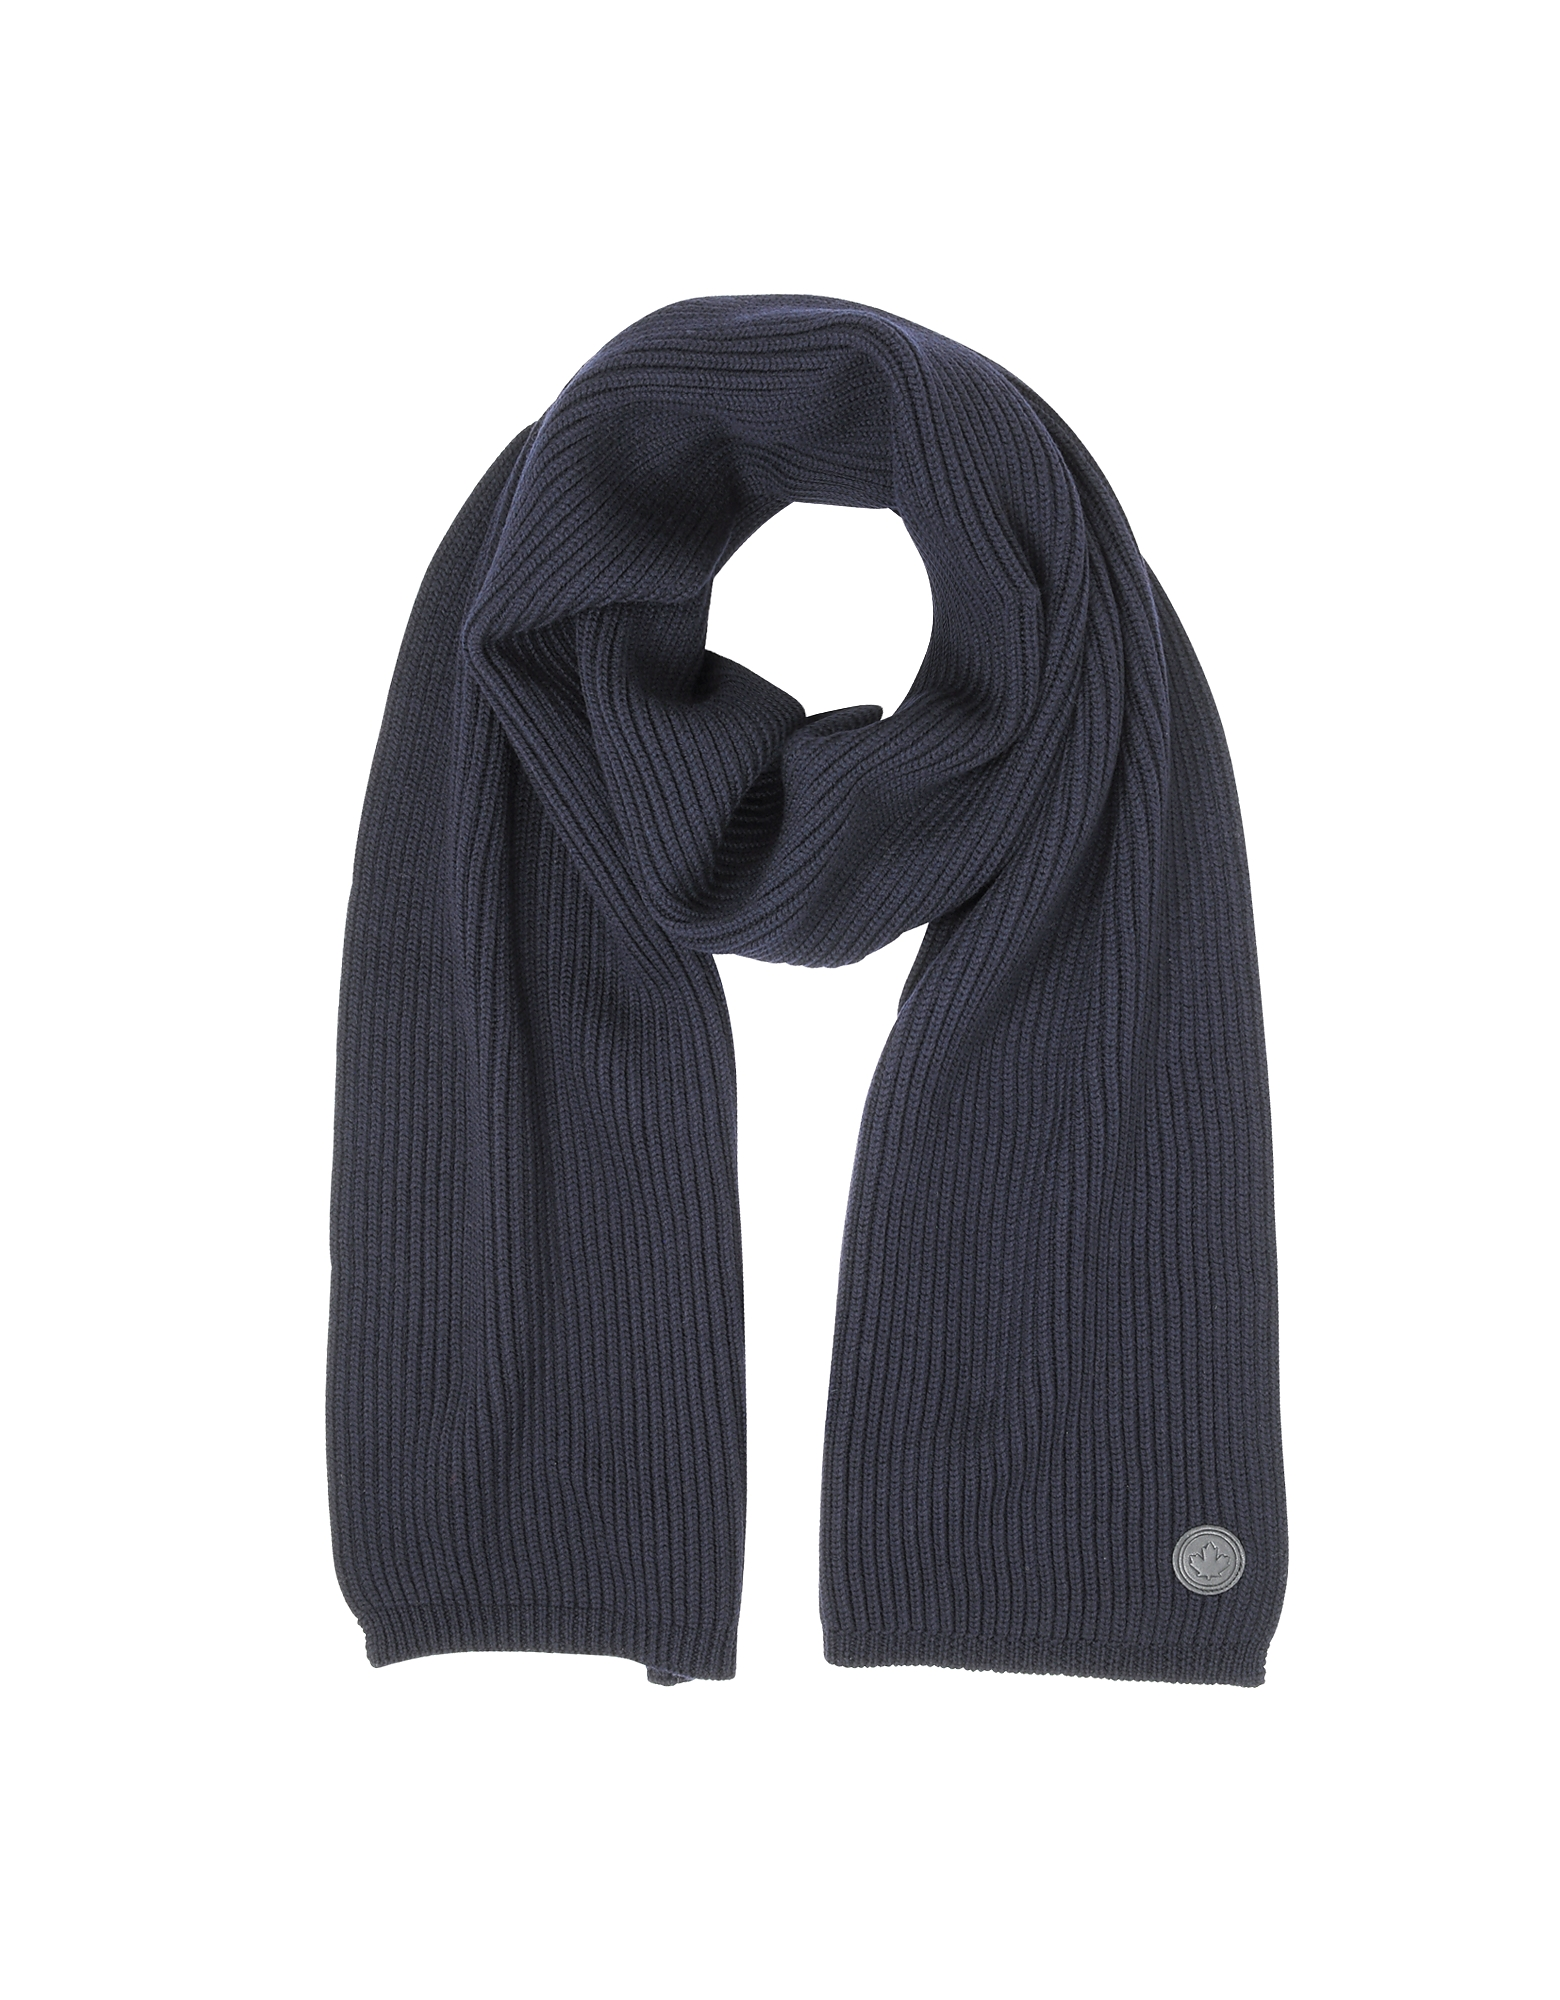 DSquared2 Men's Scarves, Solid Wool Knit Men's Long Scarf